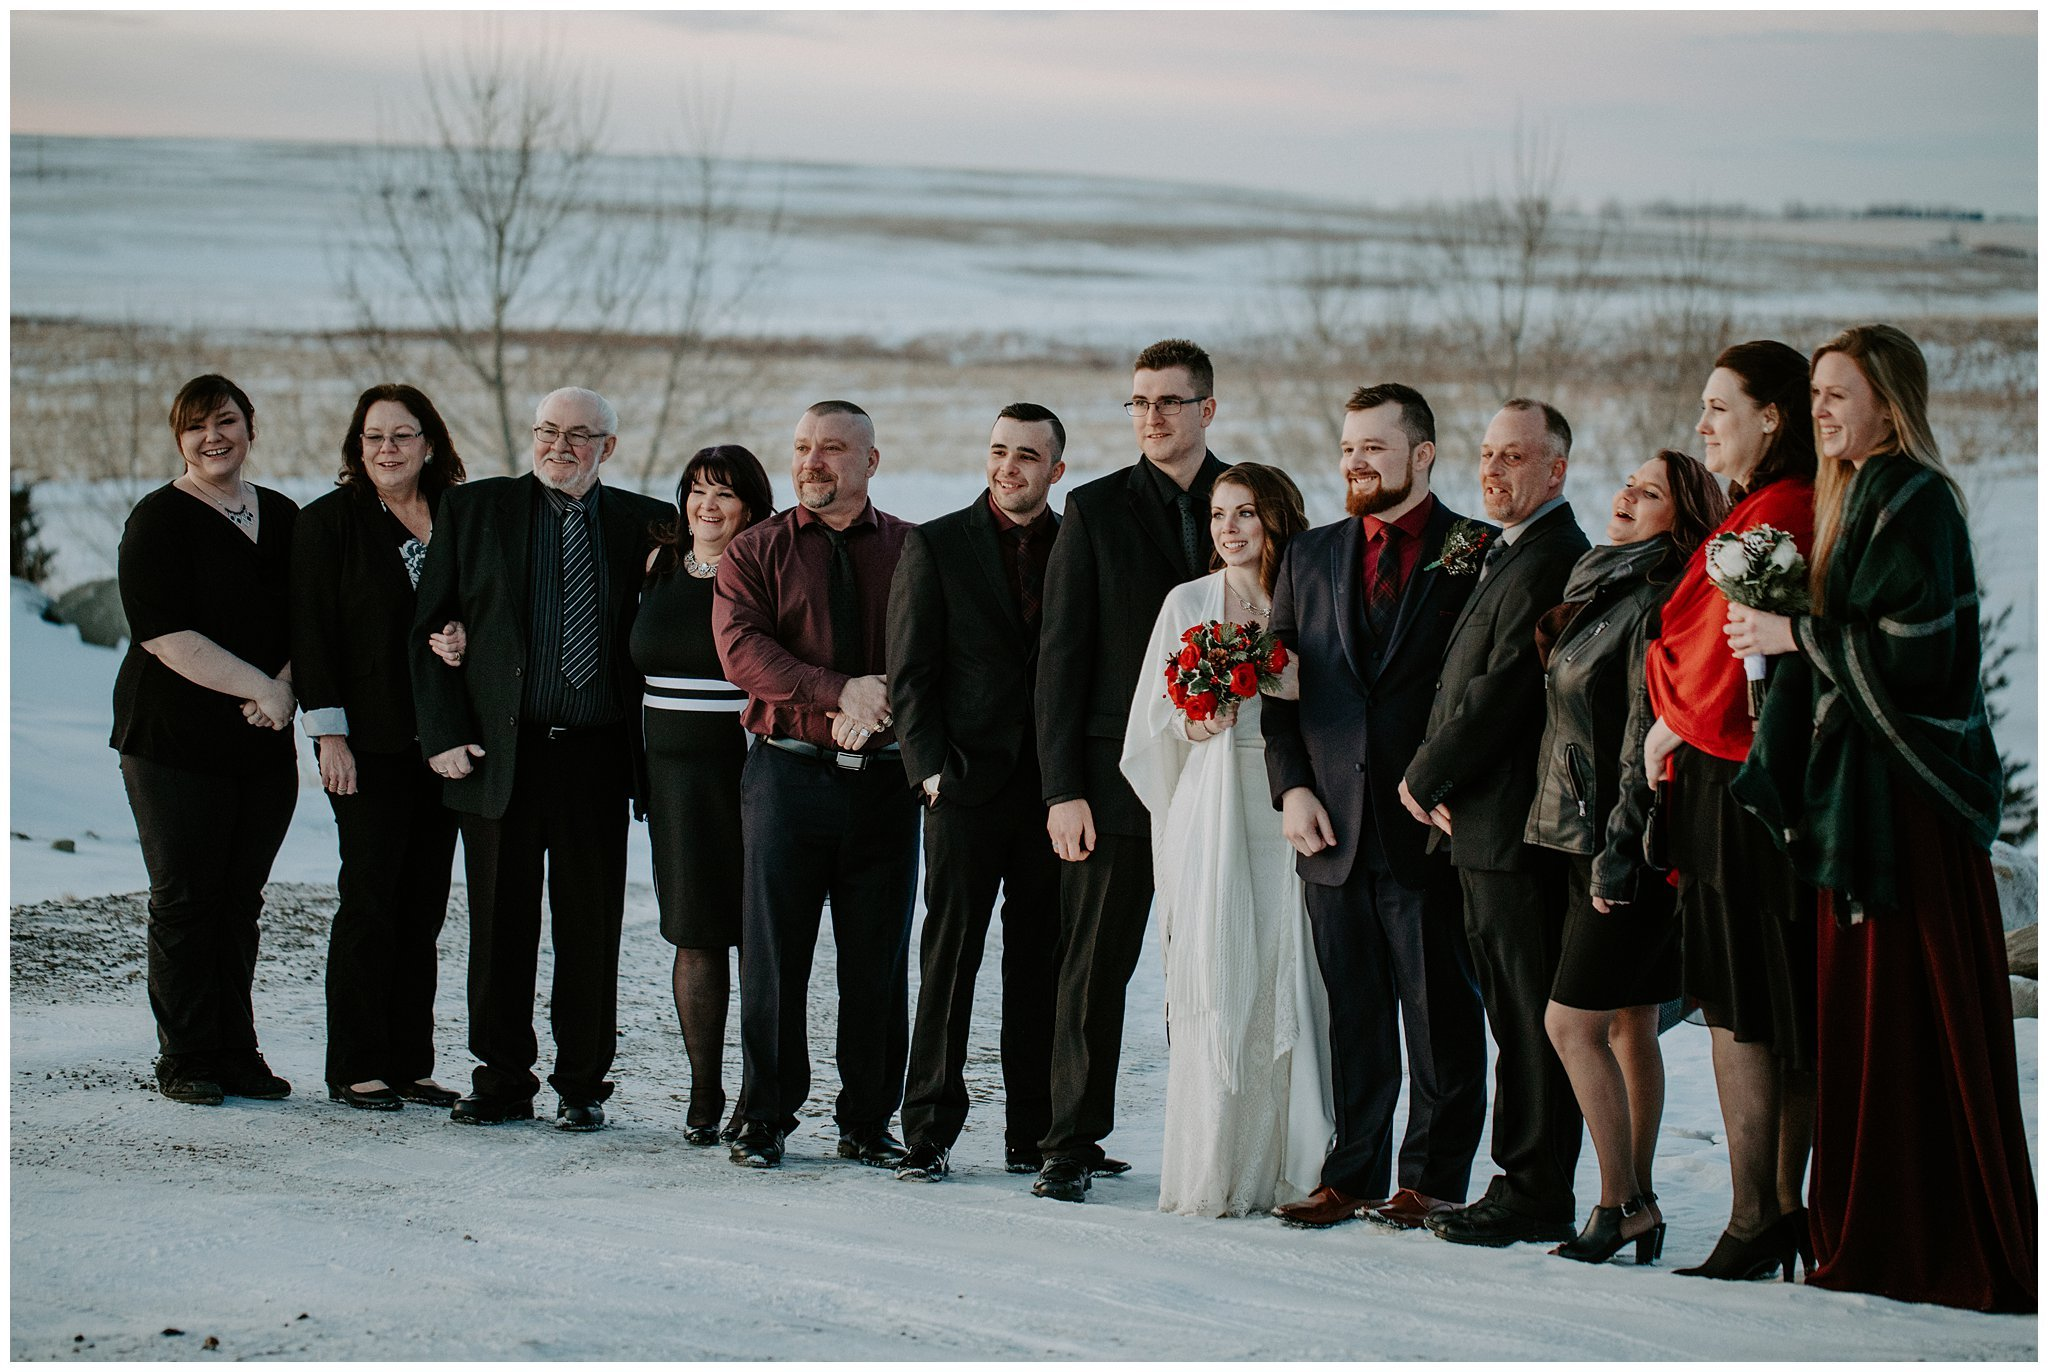 Large group family photos at wedding